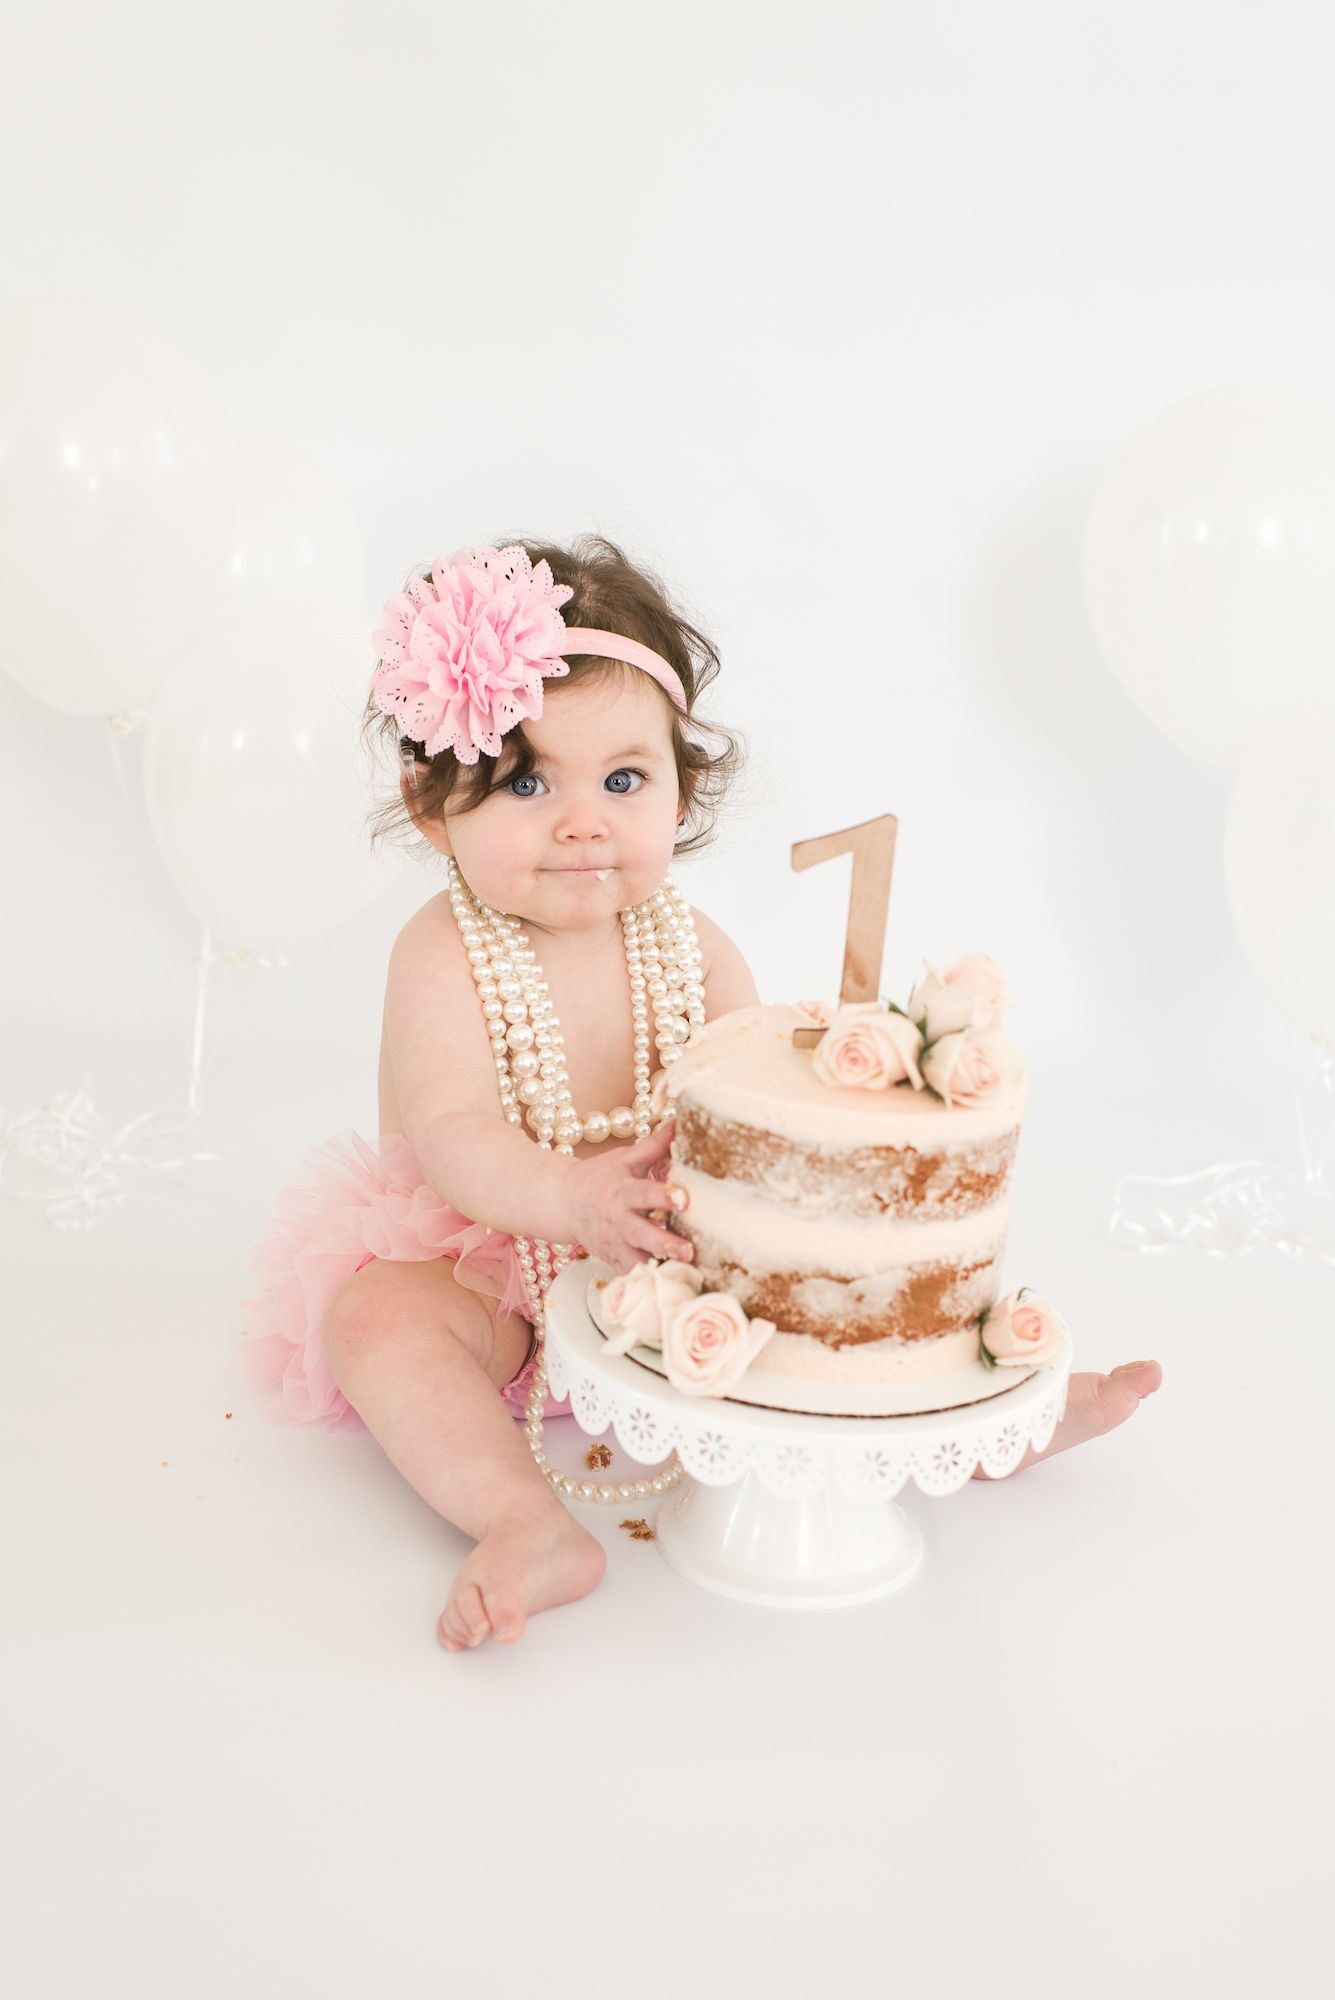 Cake Smash photography session. Centerville Ohio. www